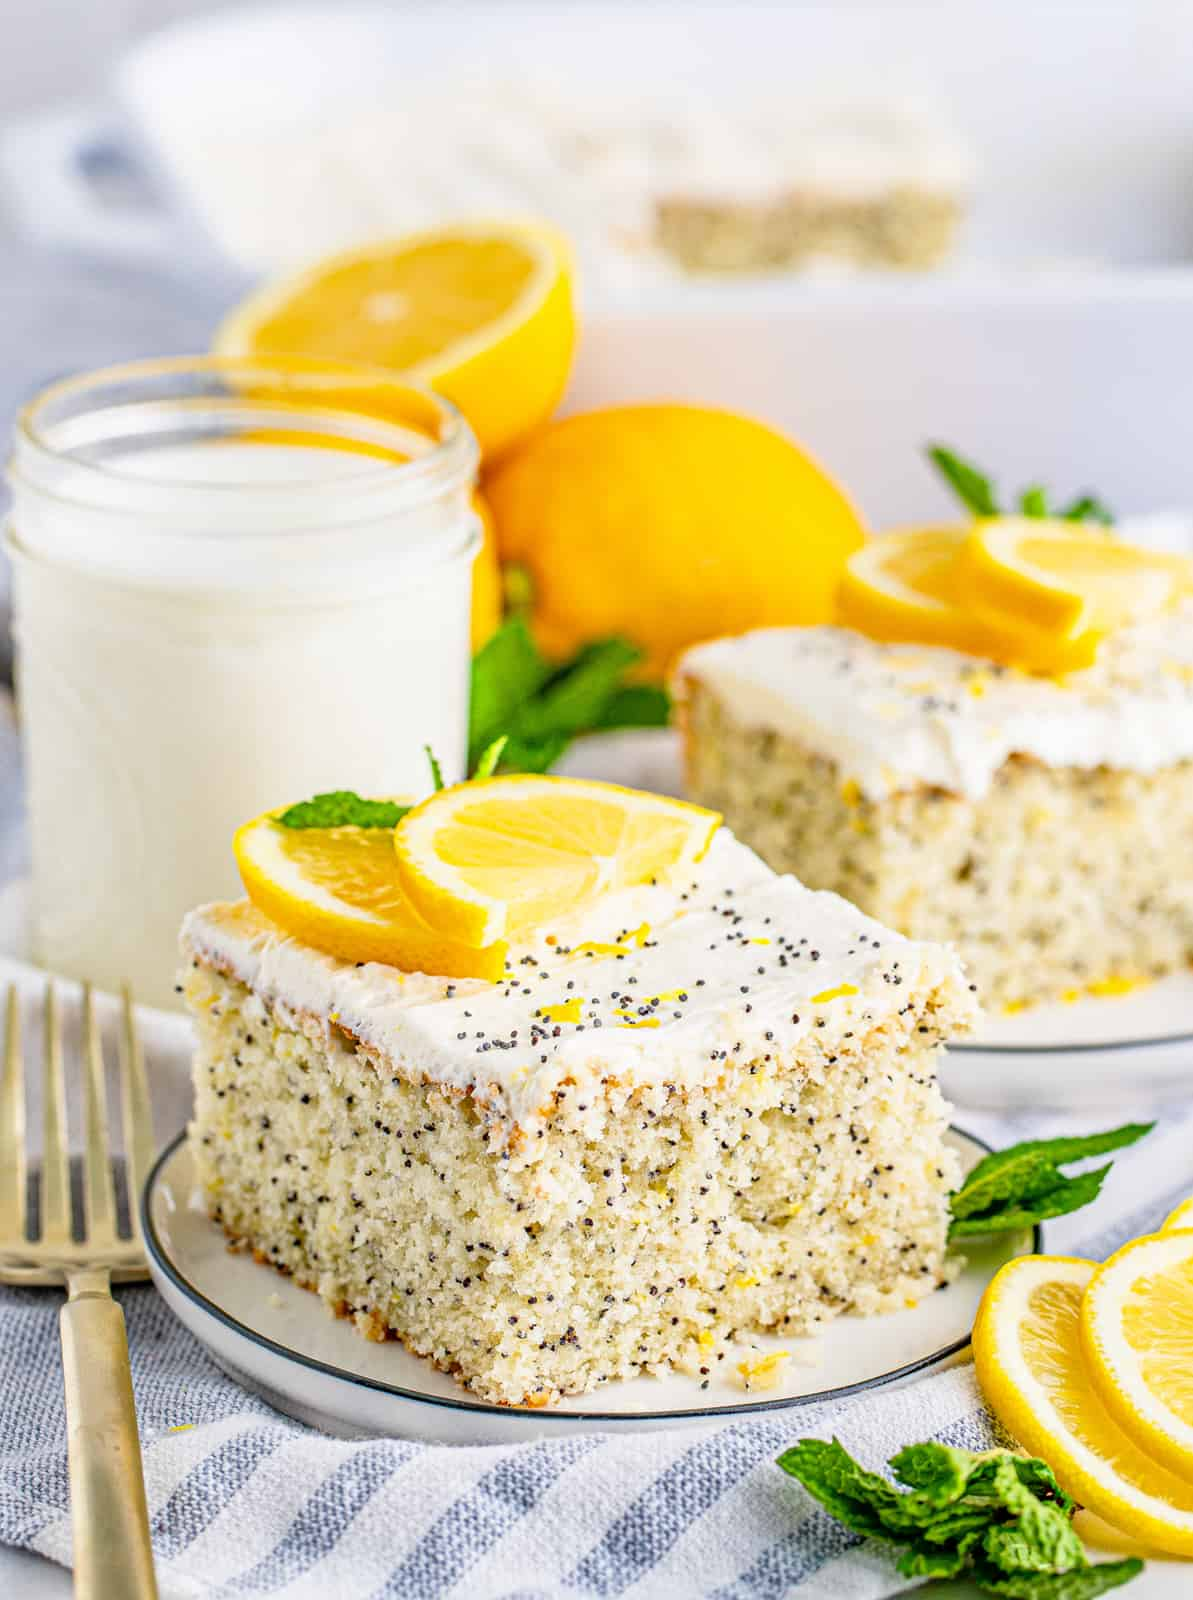 Two slices of The Best Lemon Poppy Seed Cake topped with lemon and mint